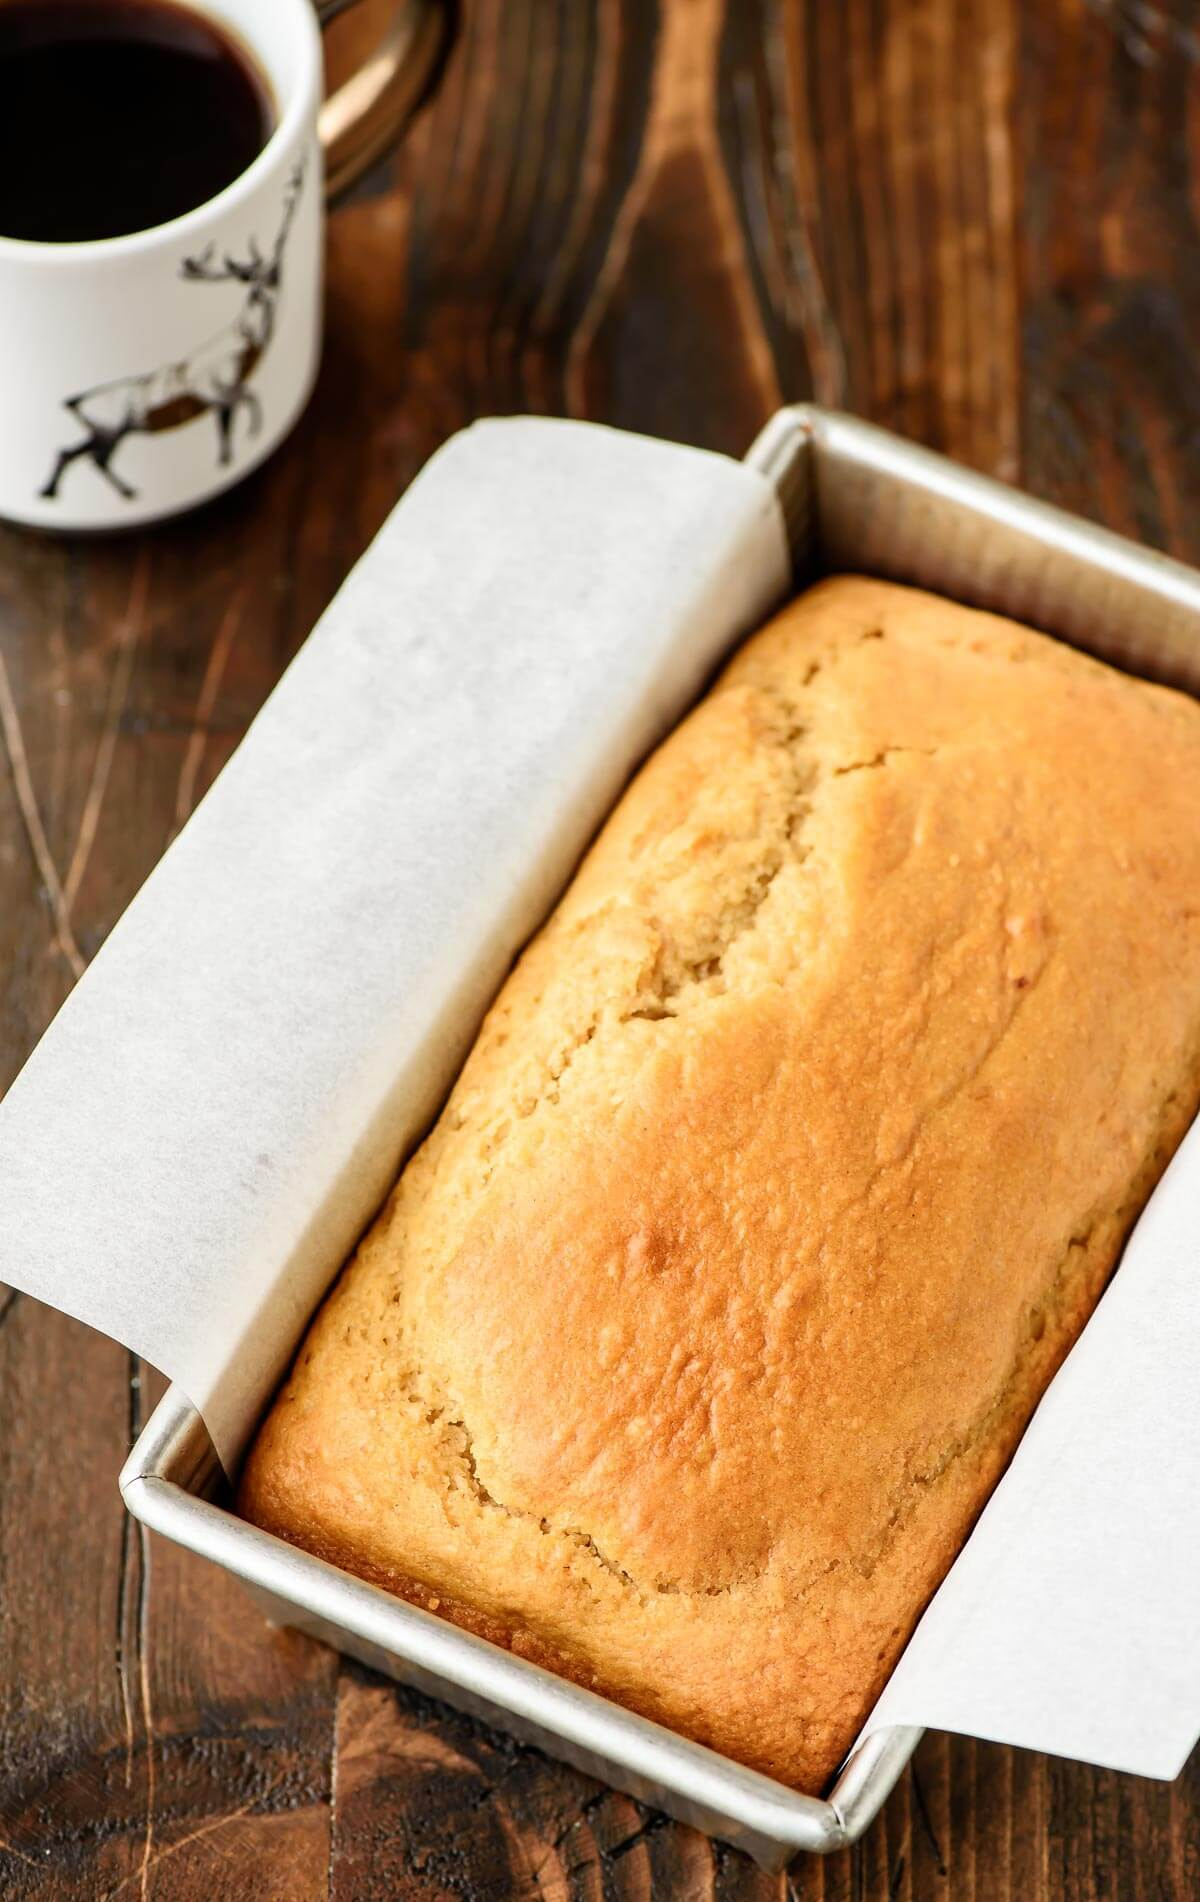 Moist Eggnog Bread packed with the holiday flavors of vanilla, nutmeg, and of course butter! Perfect for Christmas breakfast and homemade holiday gifts.